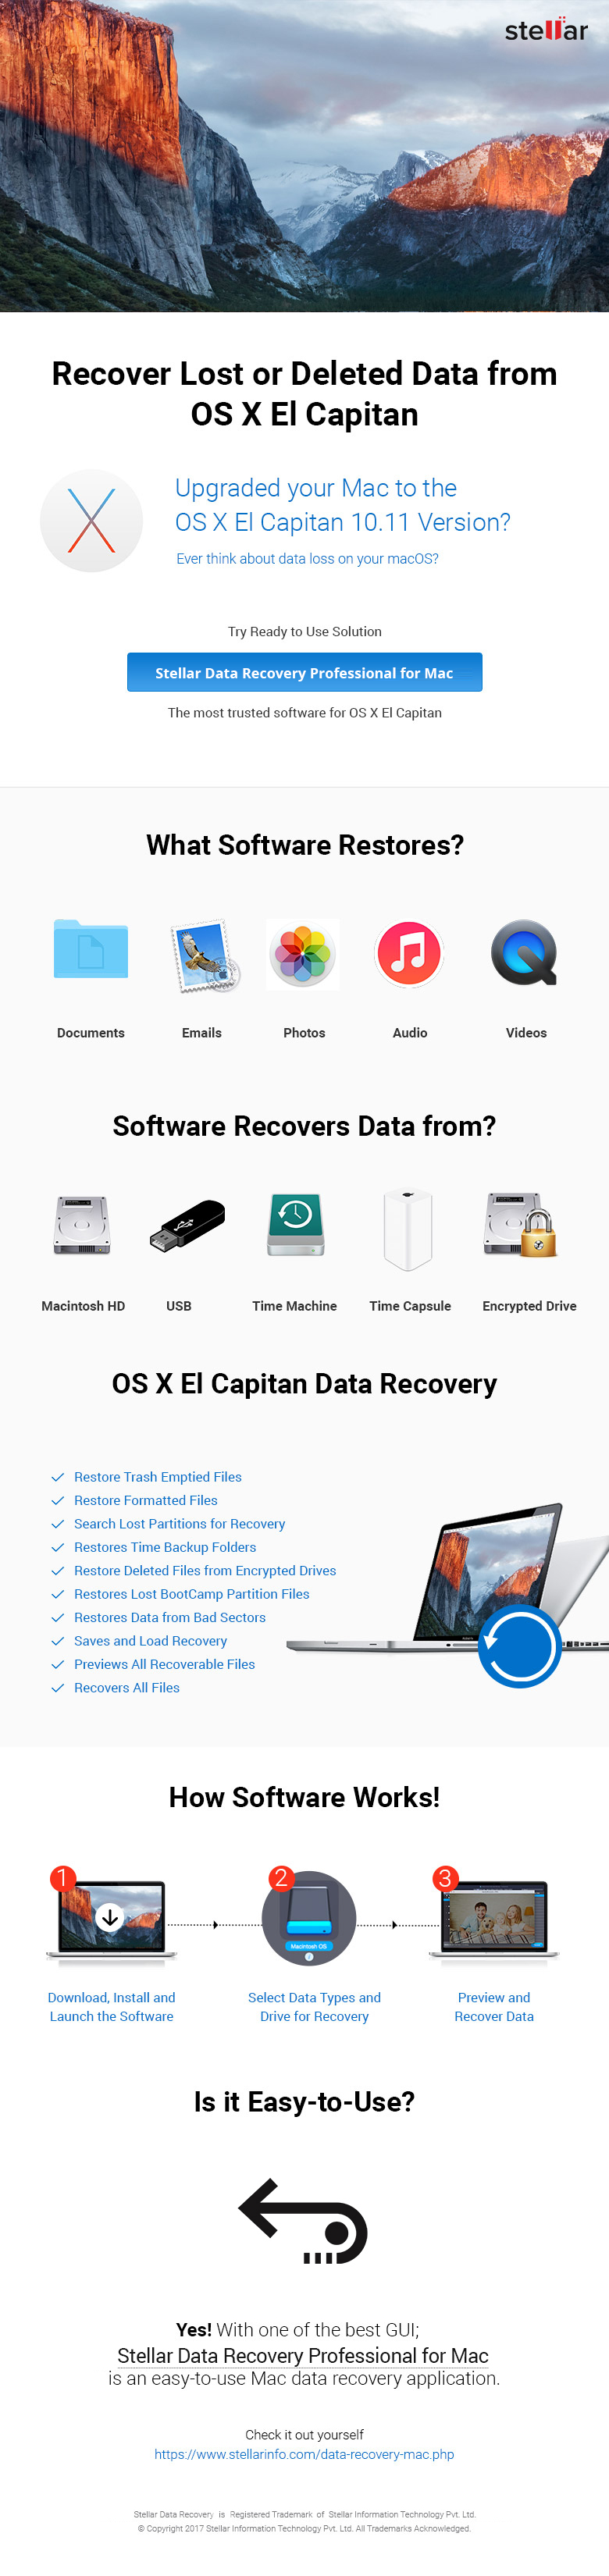 How to Recover Mac Data from O...